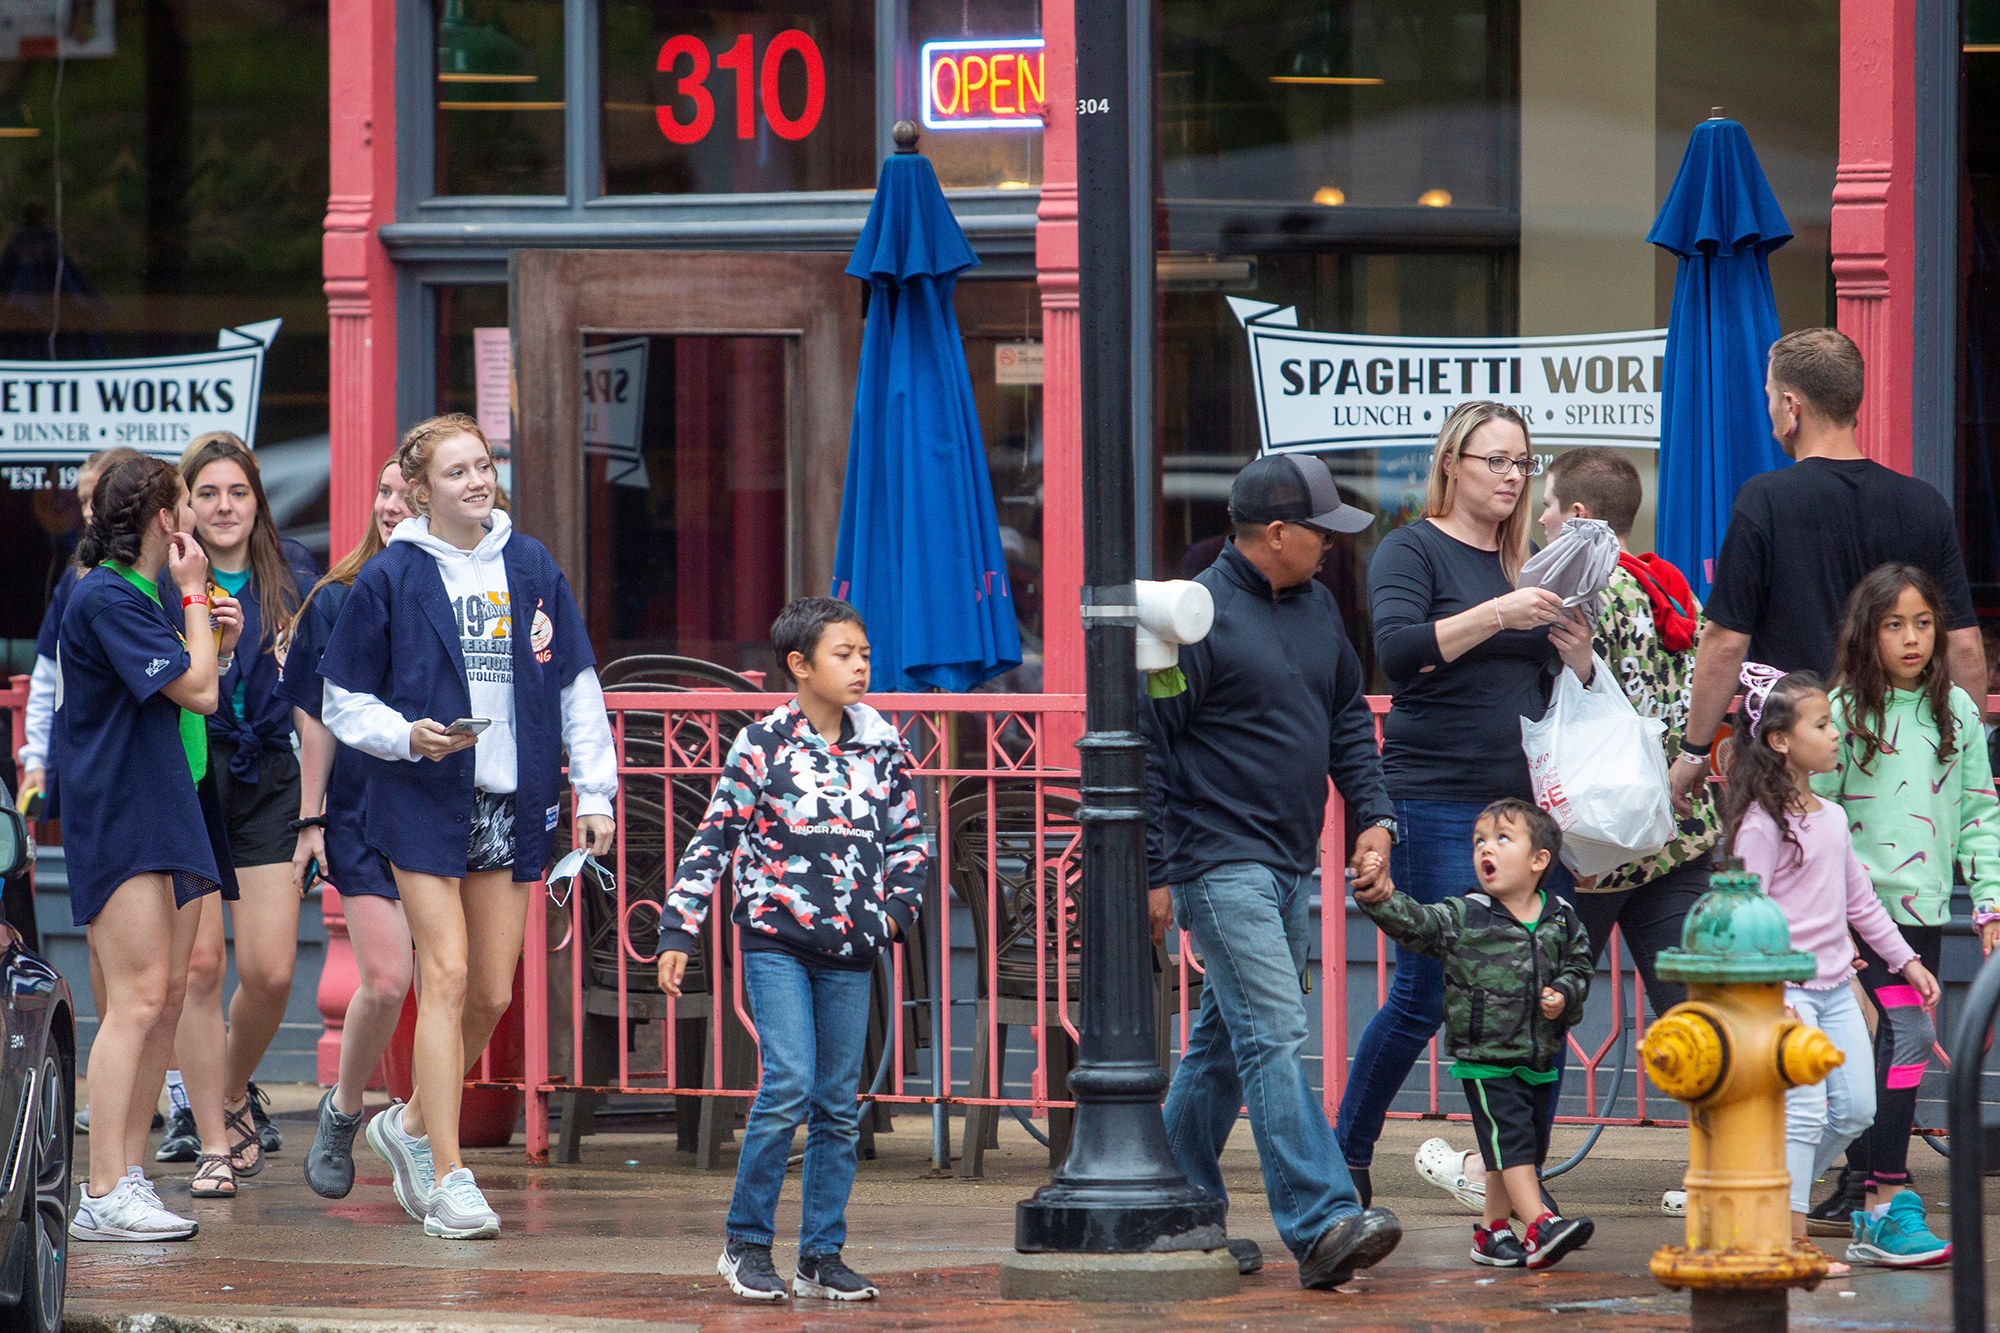 Groups of maskless people walk downtown in Des Moines on a rainy day